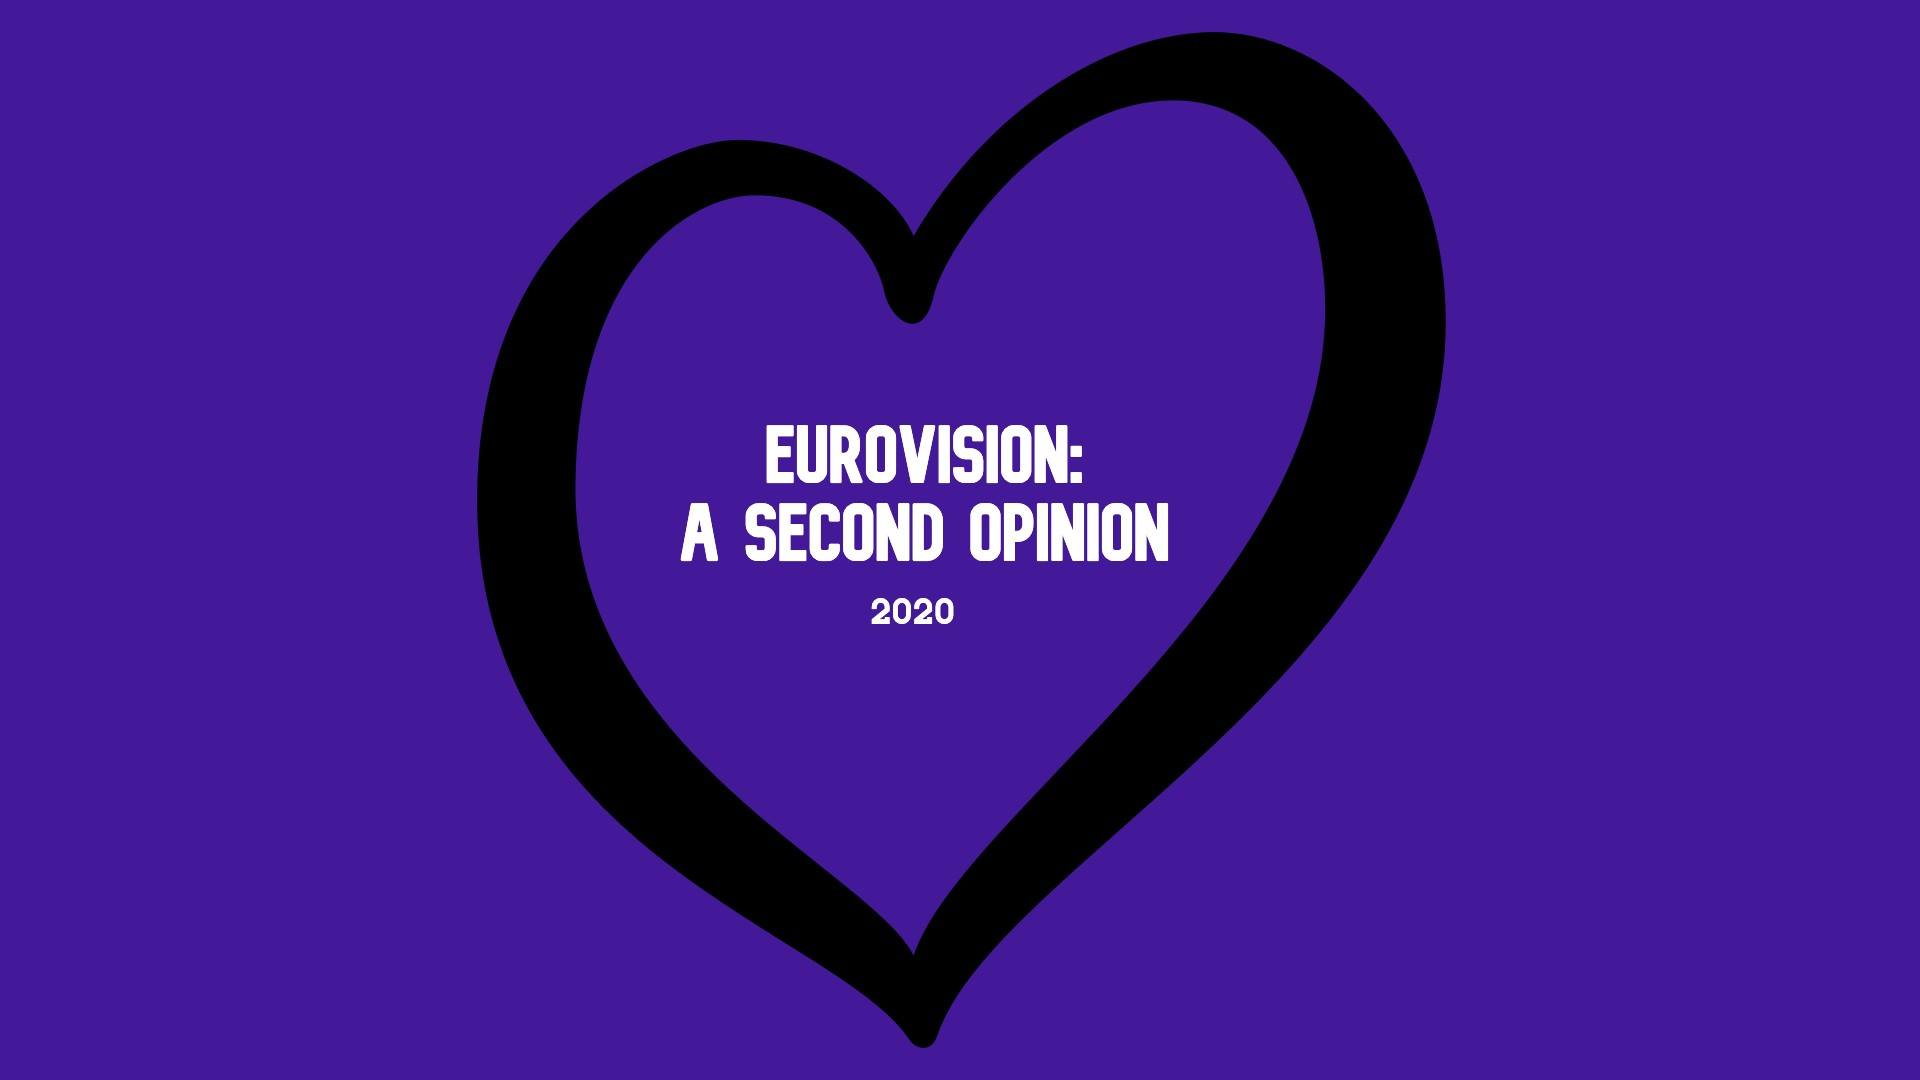 https://www.facebook.com/EurovisionSecondOpinion/